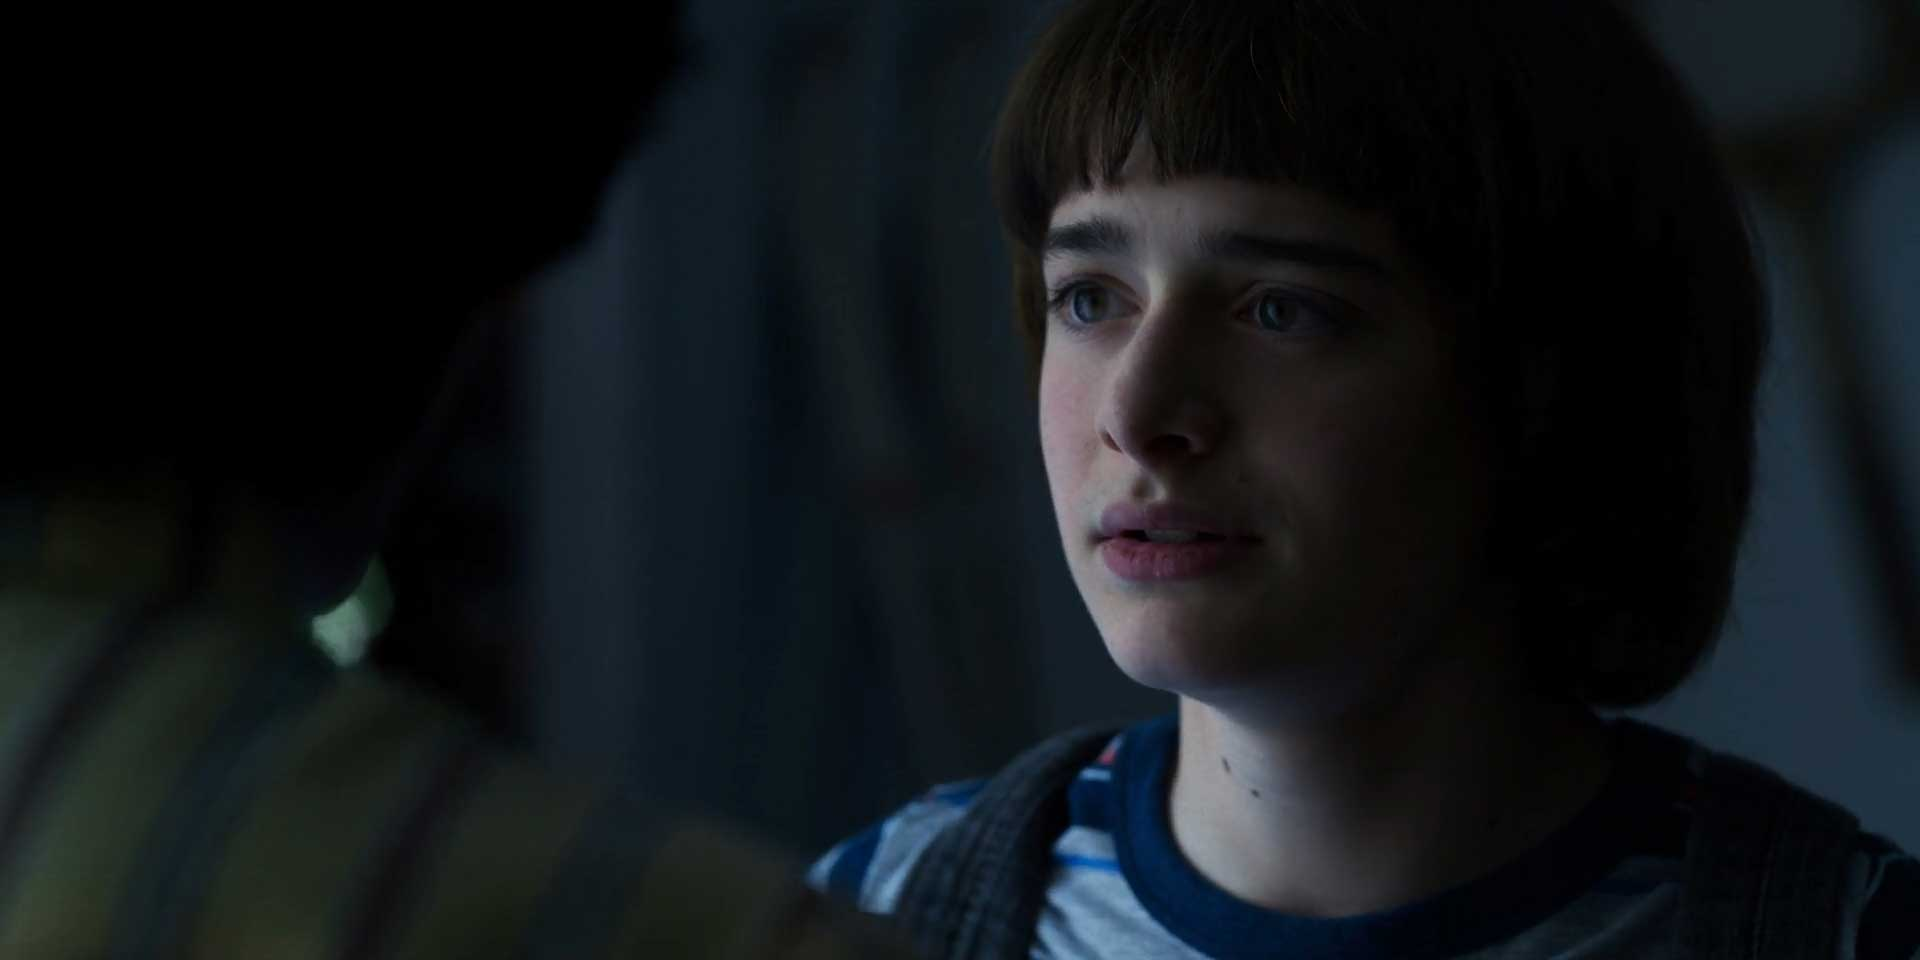 Stranger Things Season 3 Episode 3 Review: The Case Of The Missing